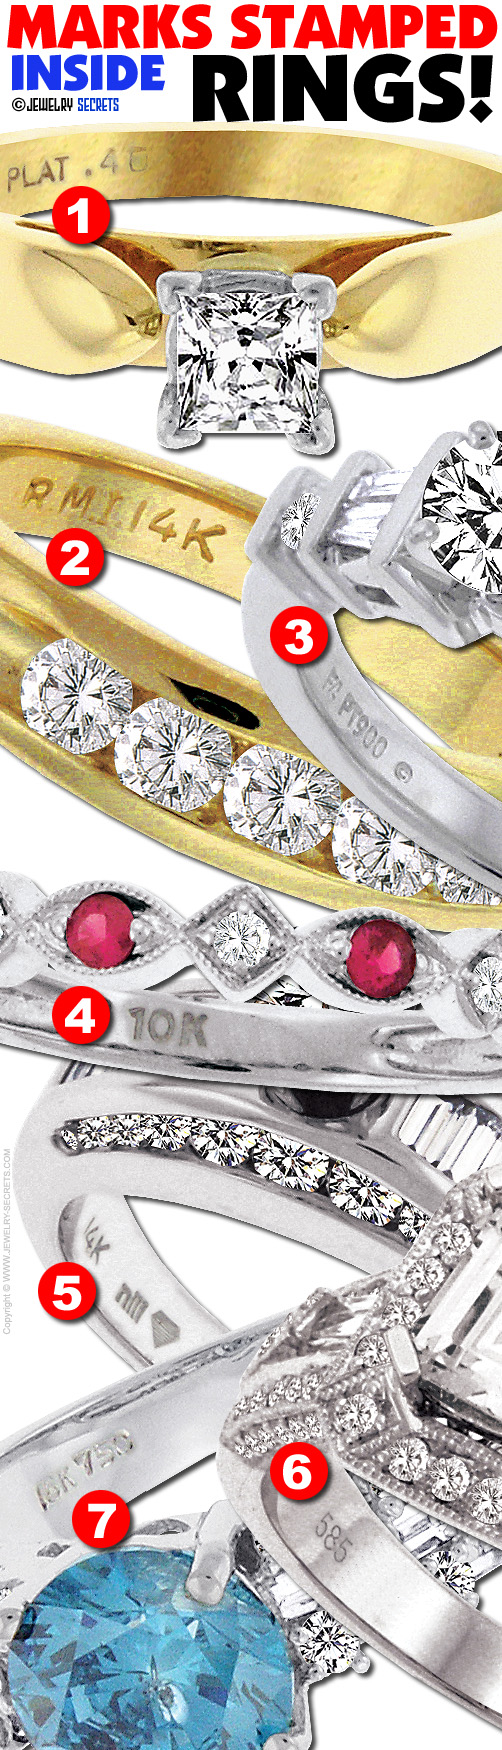 What Do the Marks Stamped Inside Your Ring Mean?